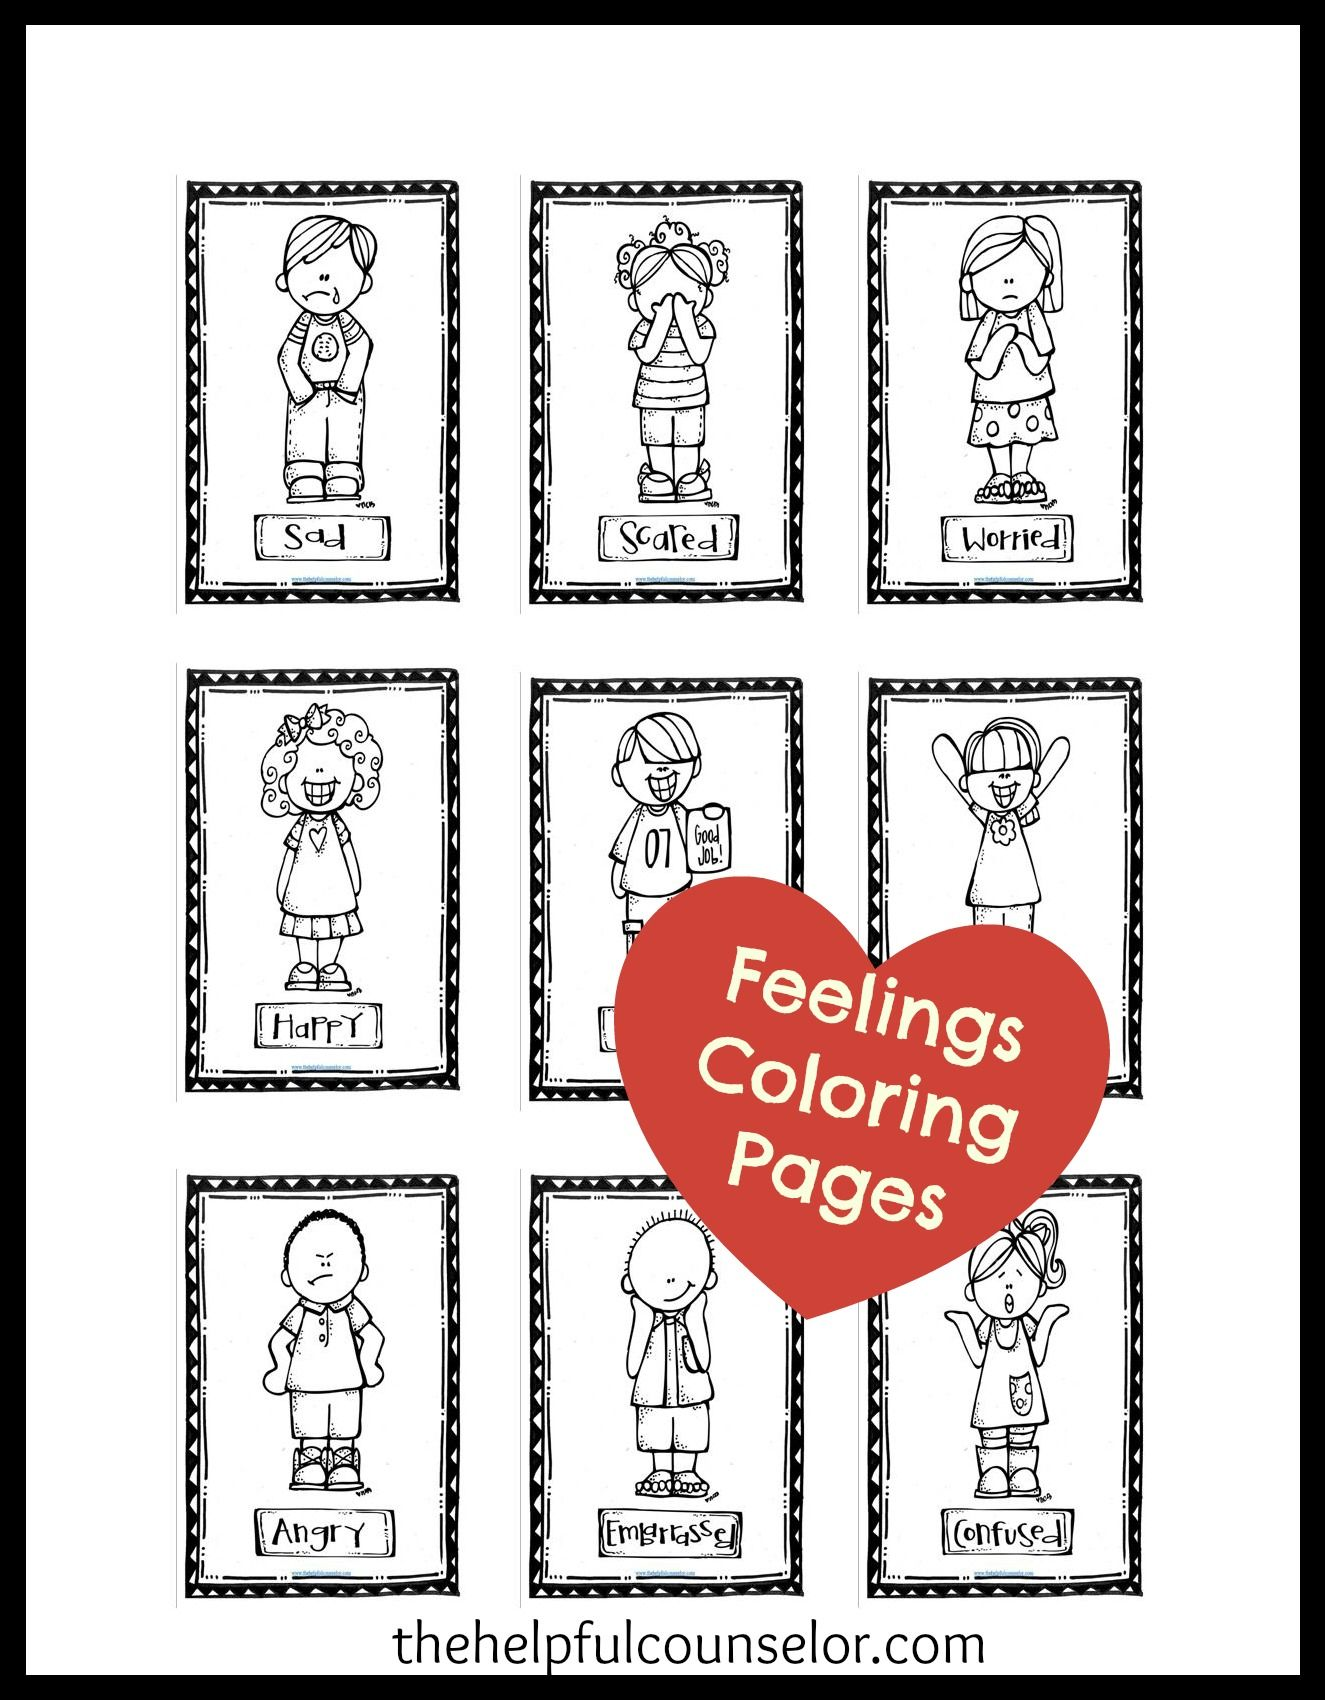 Feelings Coloring Pages Newsletter Freebie • | Pinterest | Feelings ...